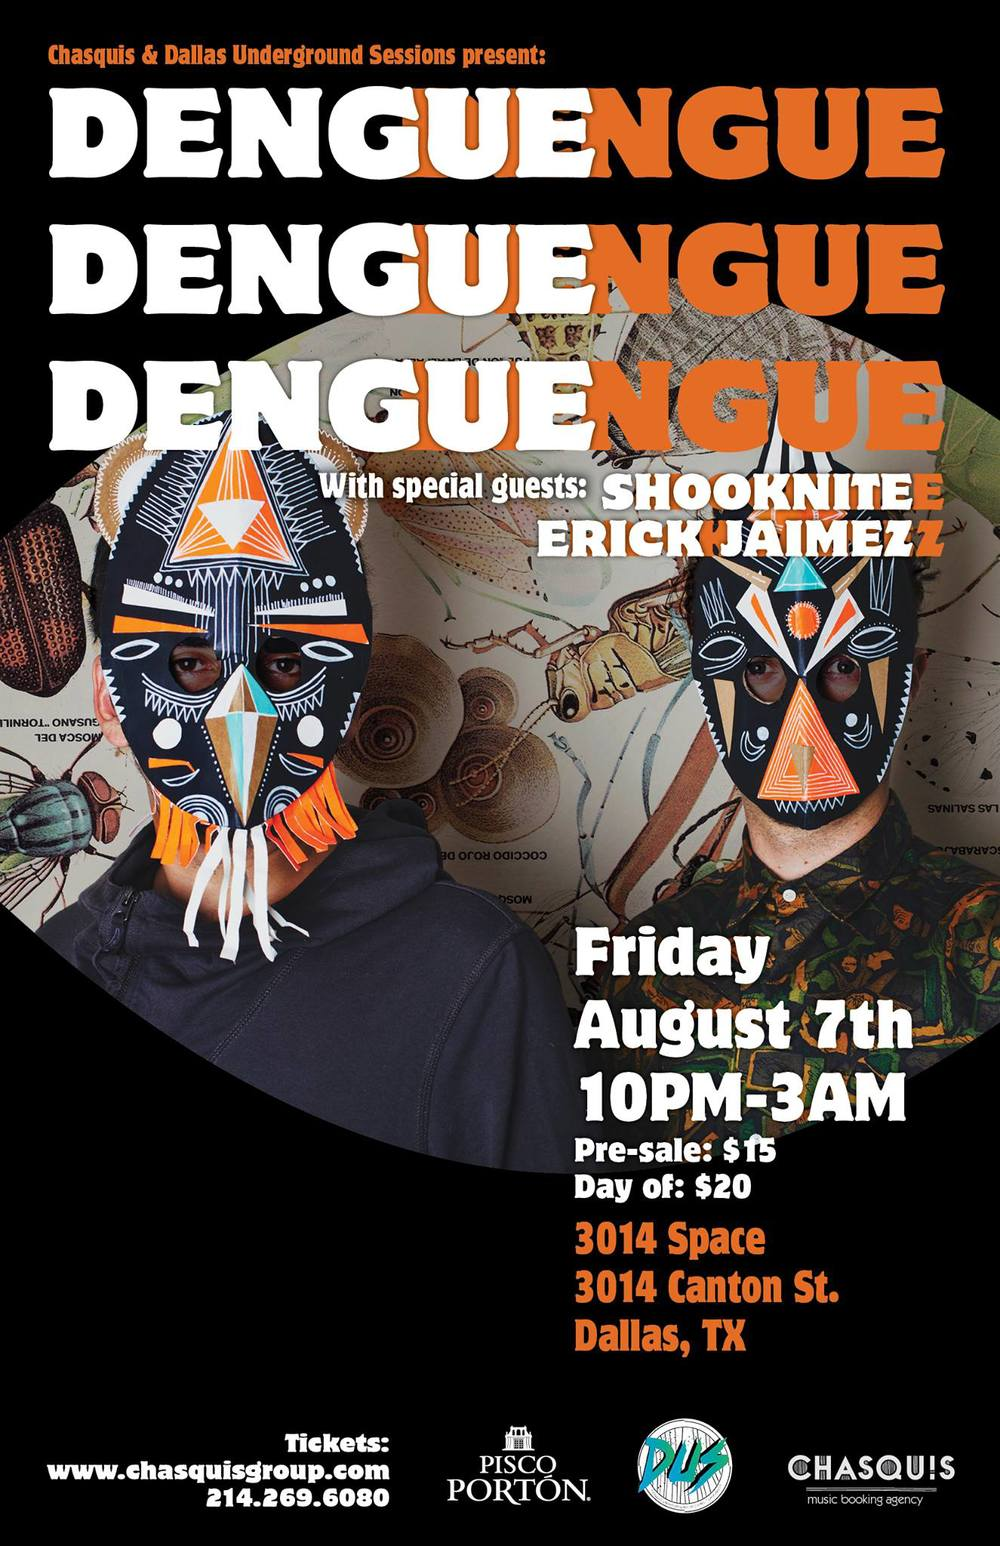 We have Dengue Dengue Dengue from Peru performing this Friday!